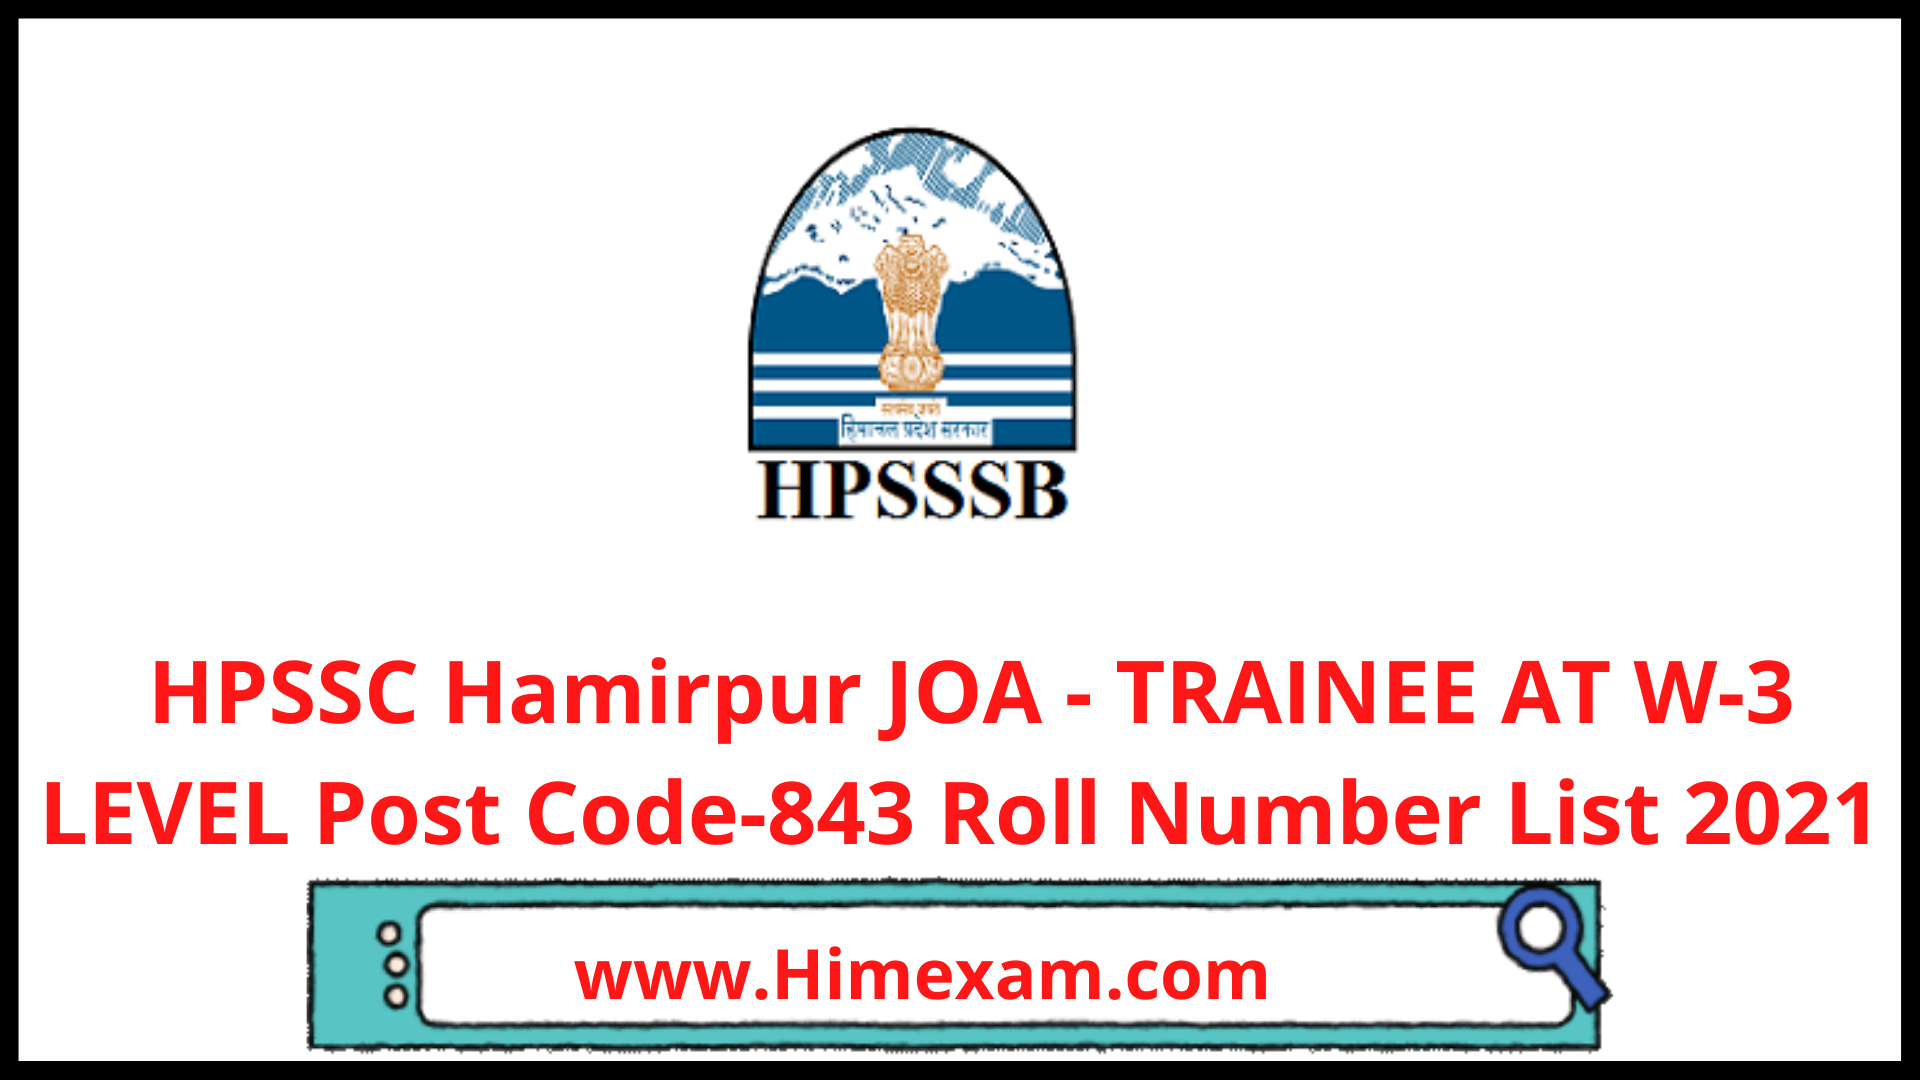 HPSSC Hamirpur JOA - TRAINEE AT W-3 LEVEL Post Code-843 Roll Number List 2021